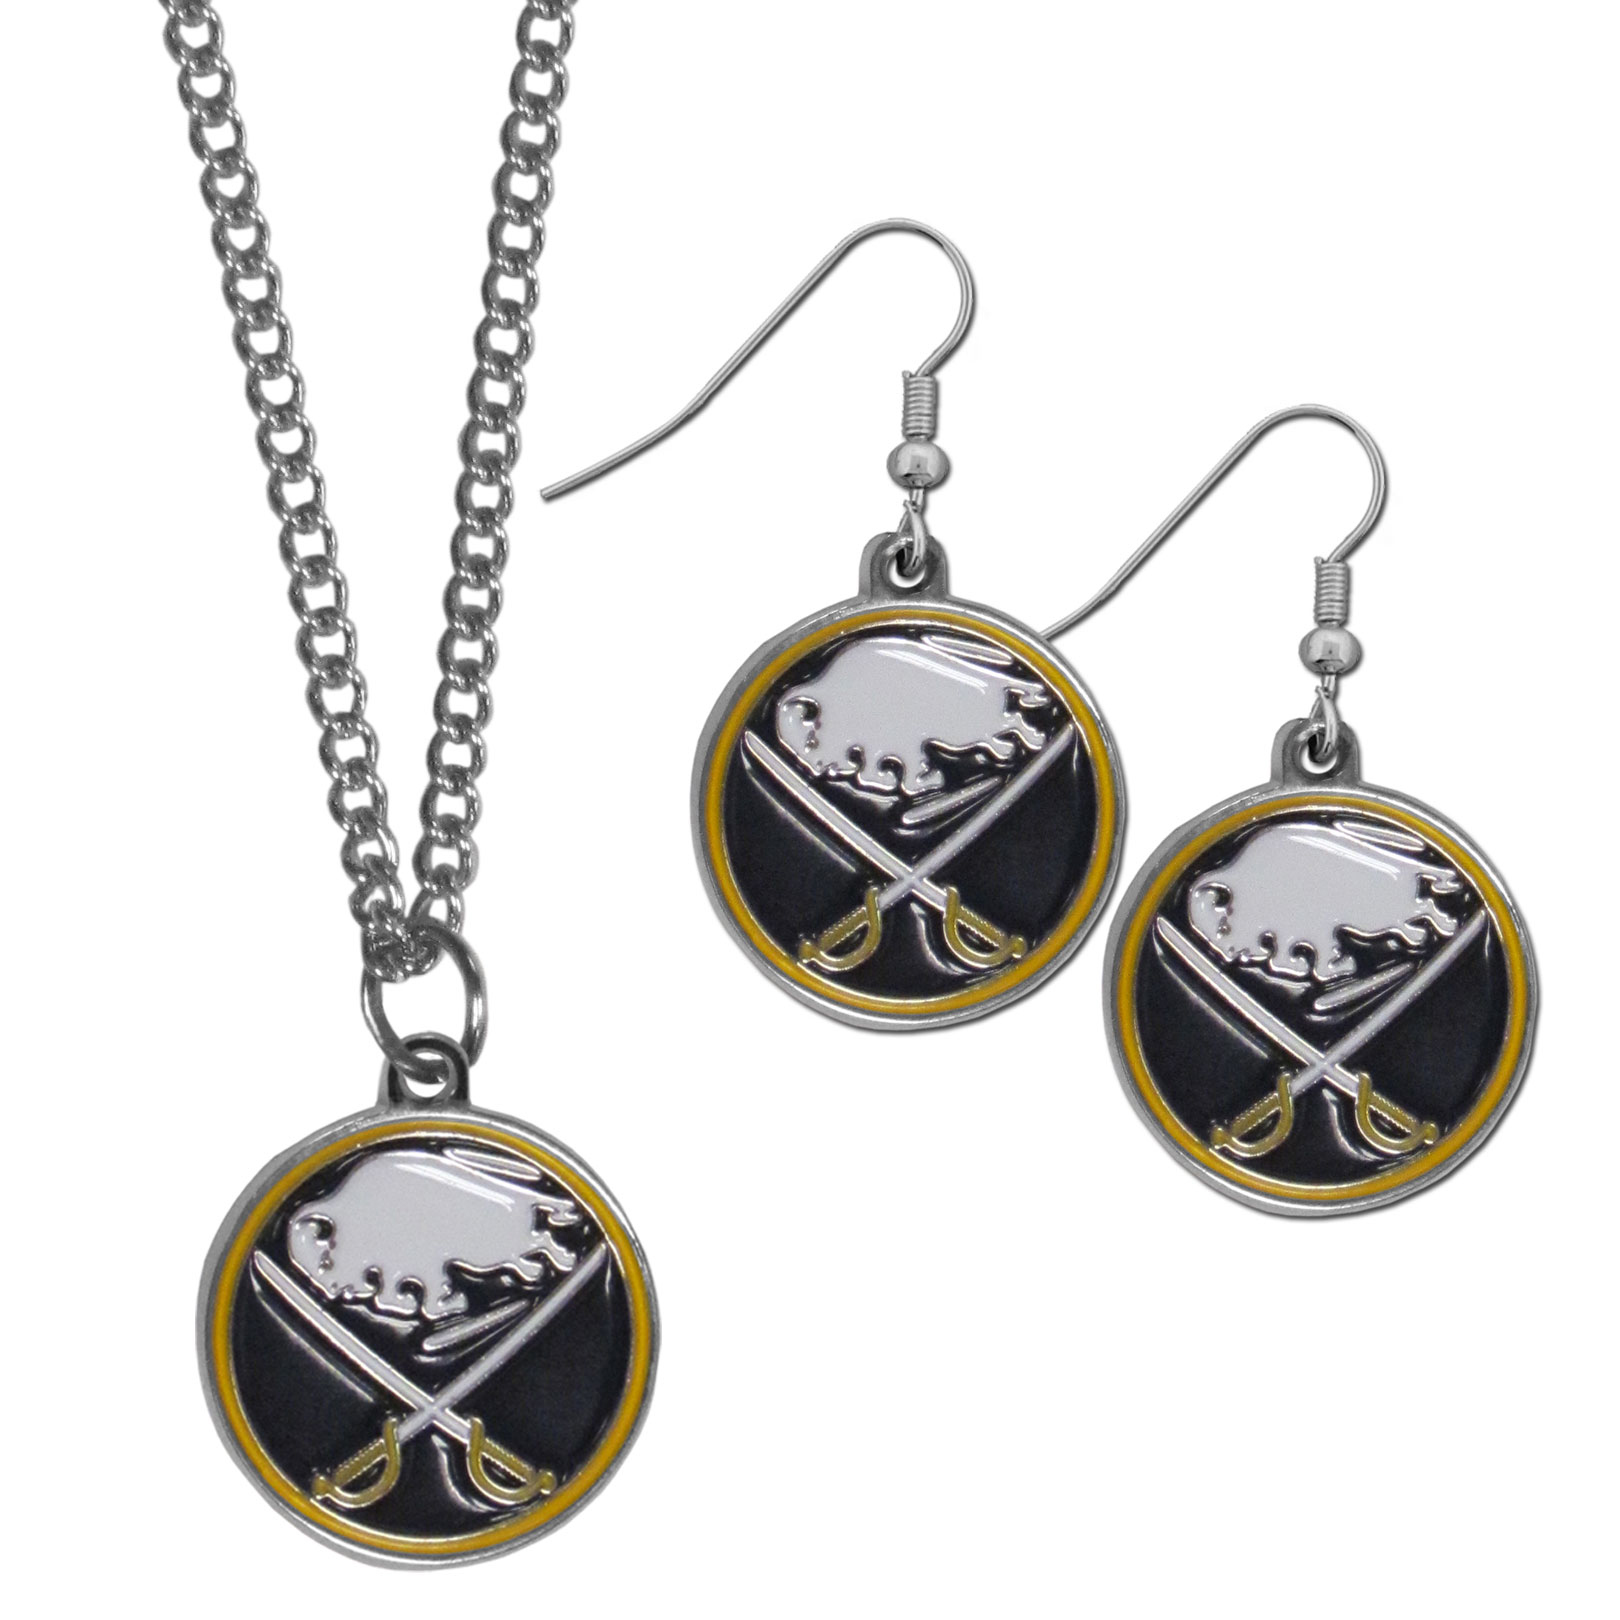 Buffalo Sabres® Dangle Earrings and Chain Necklace Set - This classic jewelry set contains are most popular Buffalo Sabres® dangle earrings and 22 inch chain necklace. The trendy, dangle earrings are lightweight and feature a fully cast metal team charm with enameled team colors. The matching necklace completes this fashion forward combo and is a spirited set that is perfect for game day but nice enough for everyday.